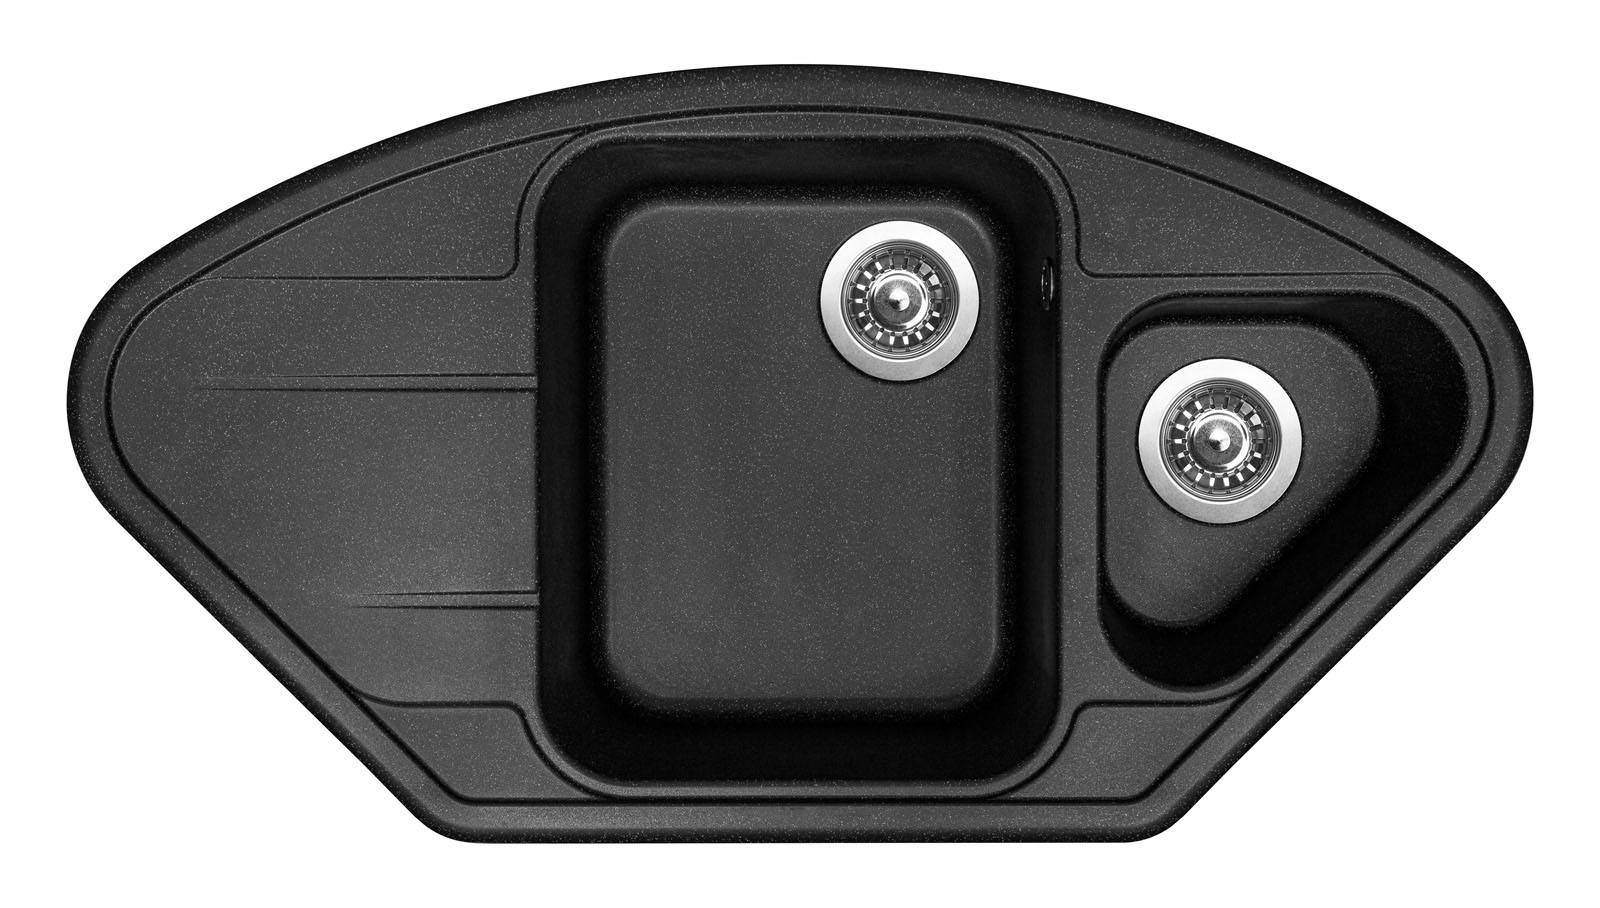 Sinks LOTUS 960.1 Granblack